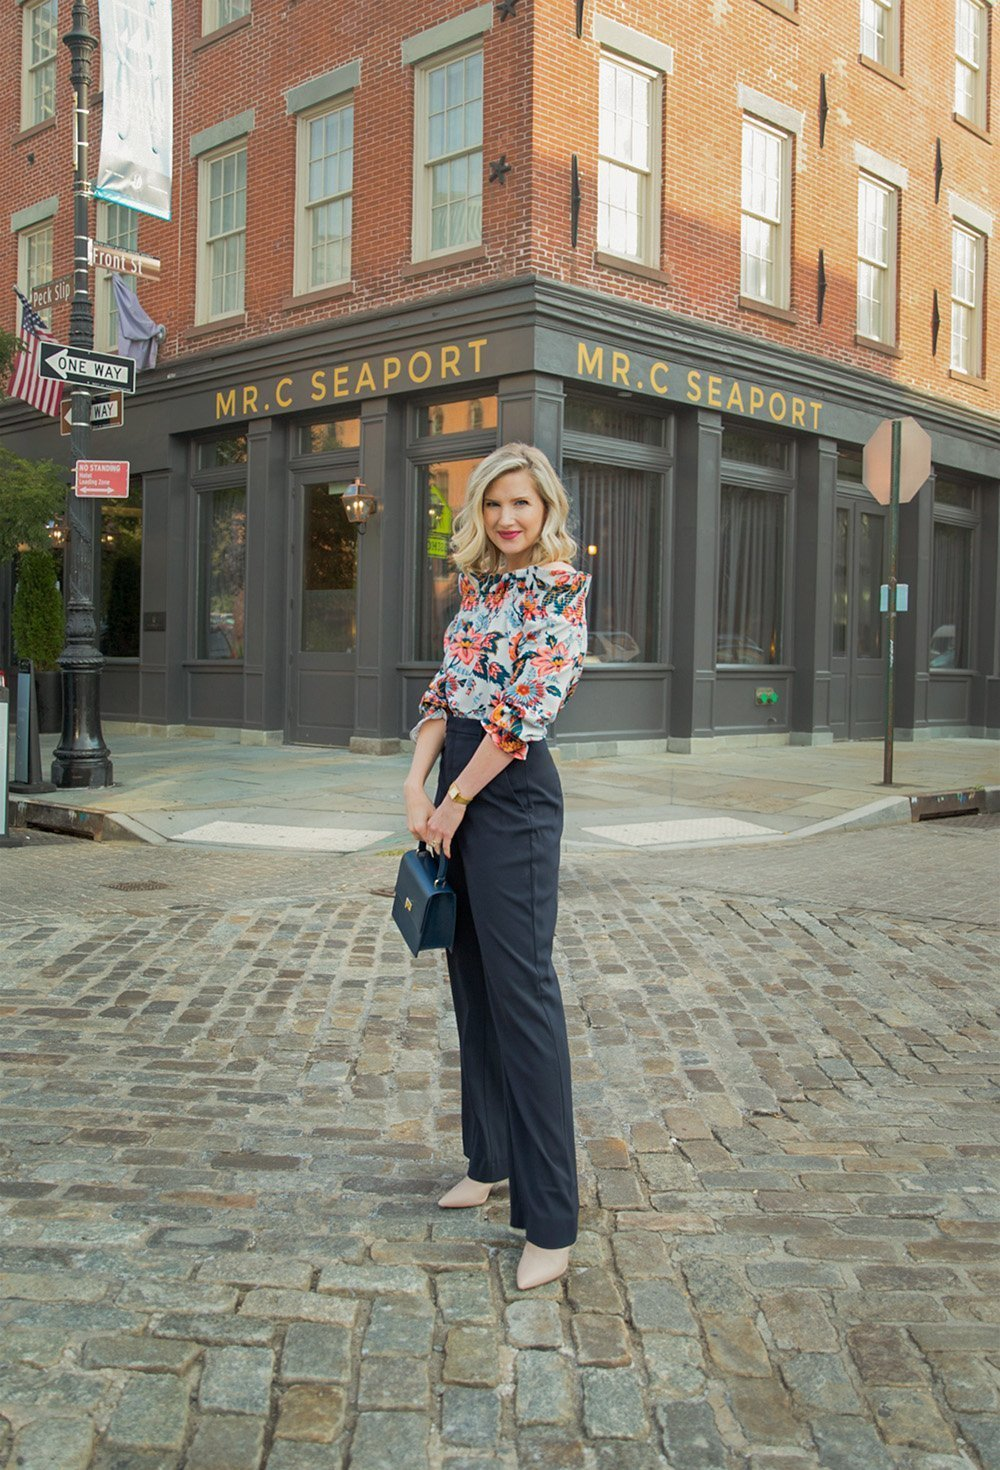 Fashion blogger Ashley Brooke in New York City wearing ruffle top and wide leg pants